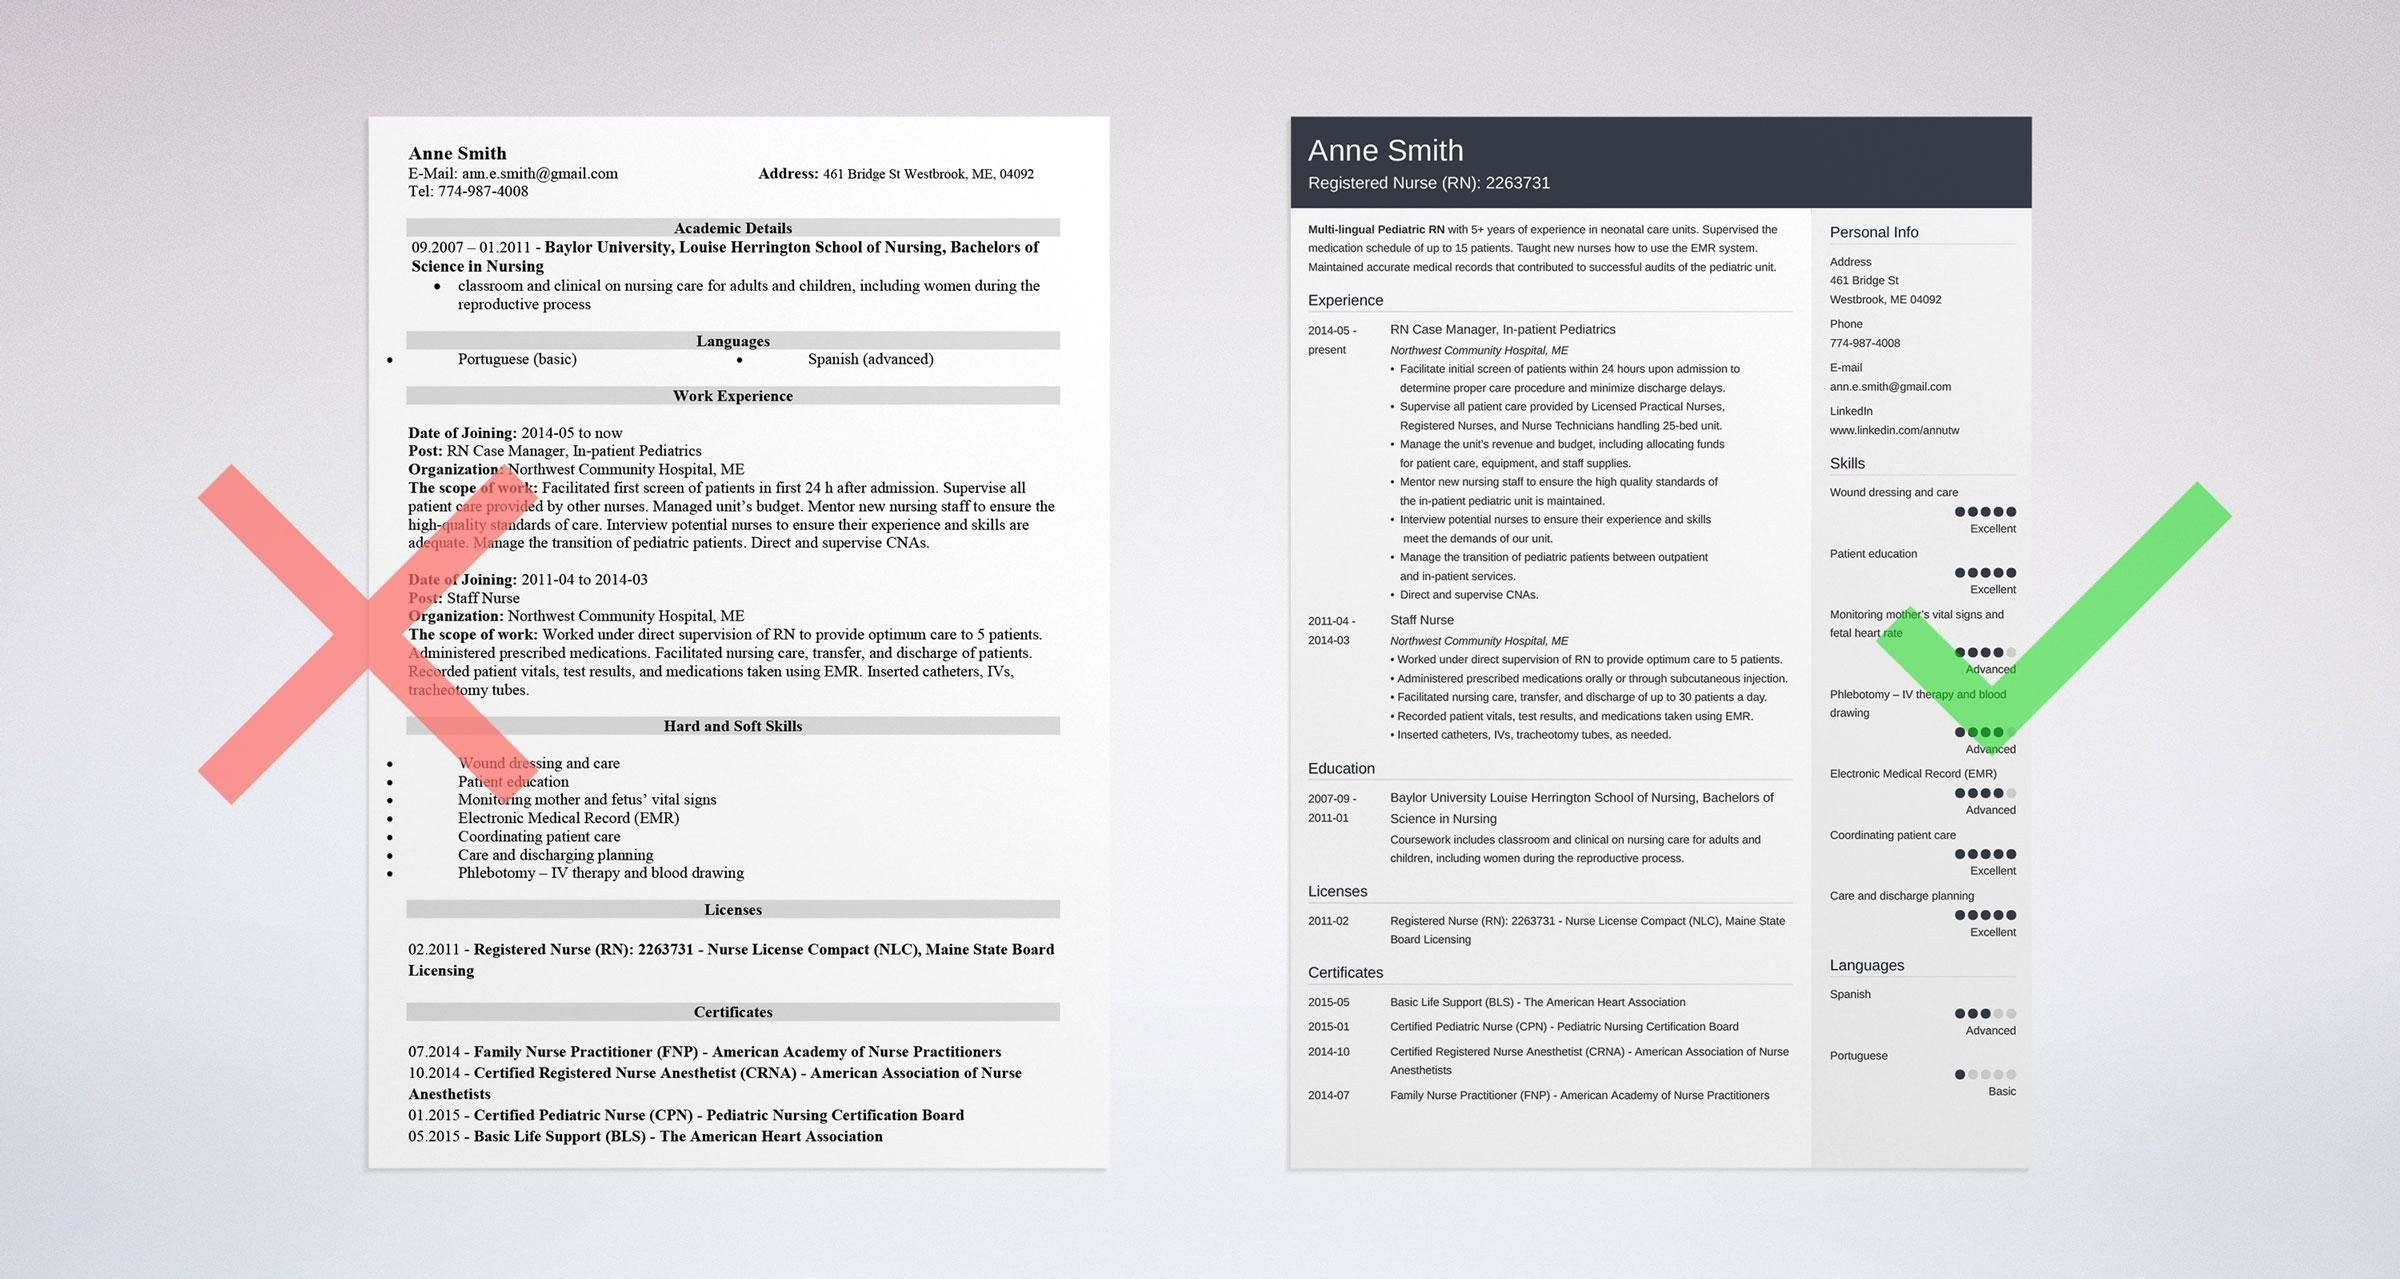 Resume Template for Nursing Nursing Resume Template & Guide [examples Of Experience